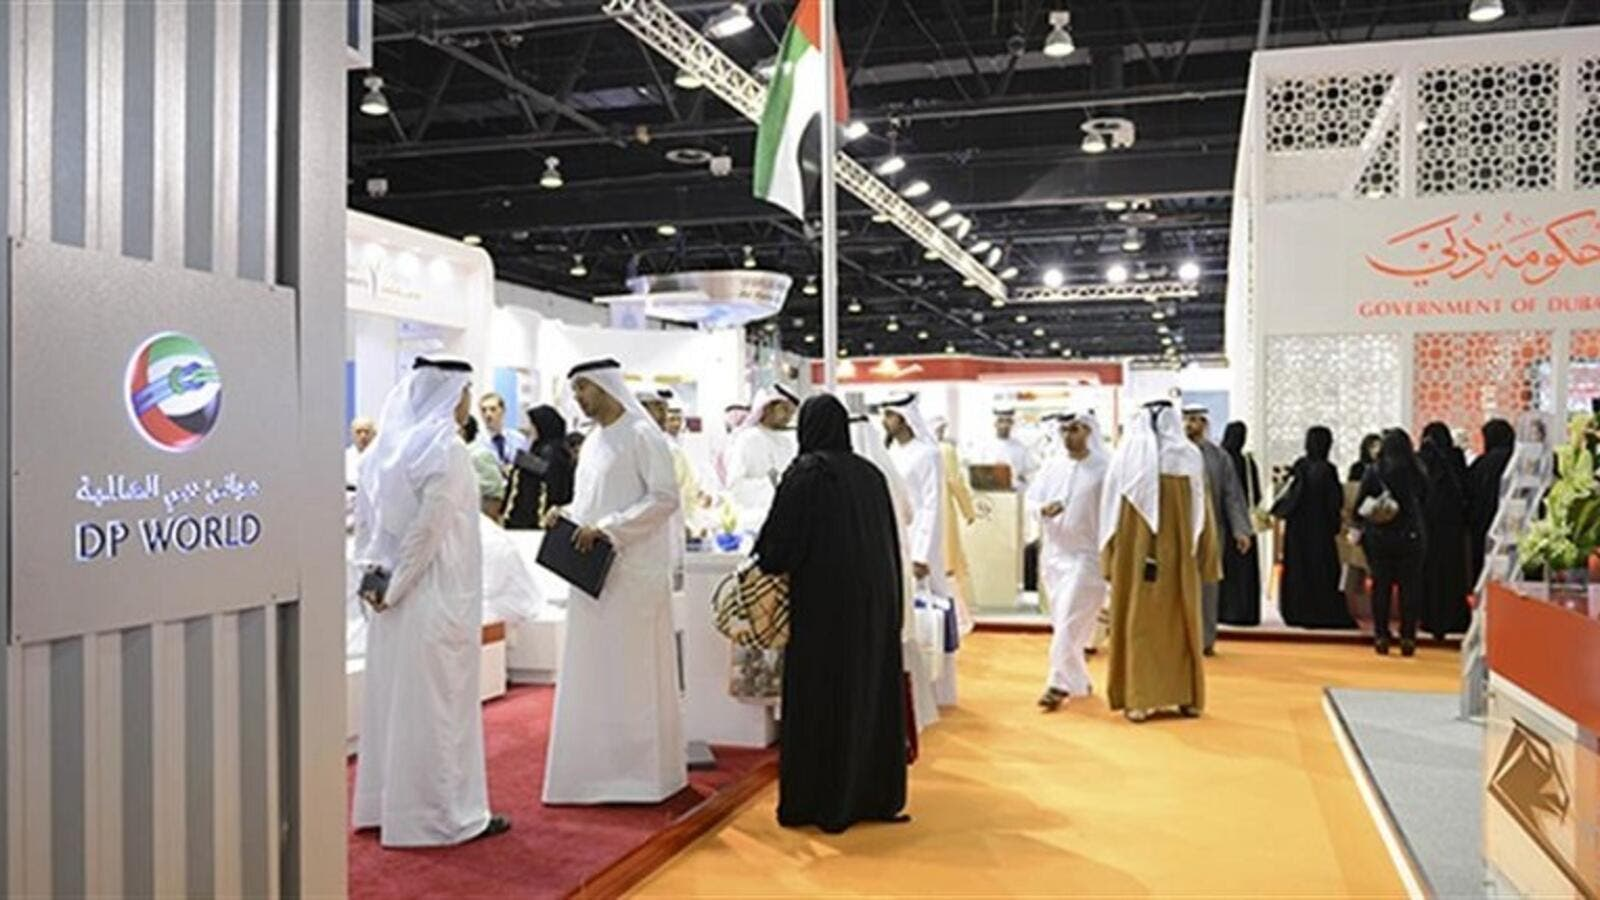 Hundreds of Jobs for Emiratis: Careers UAE 2018 to Kick off